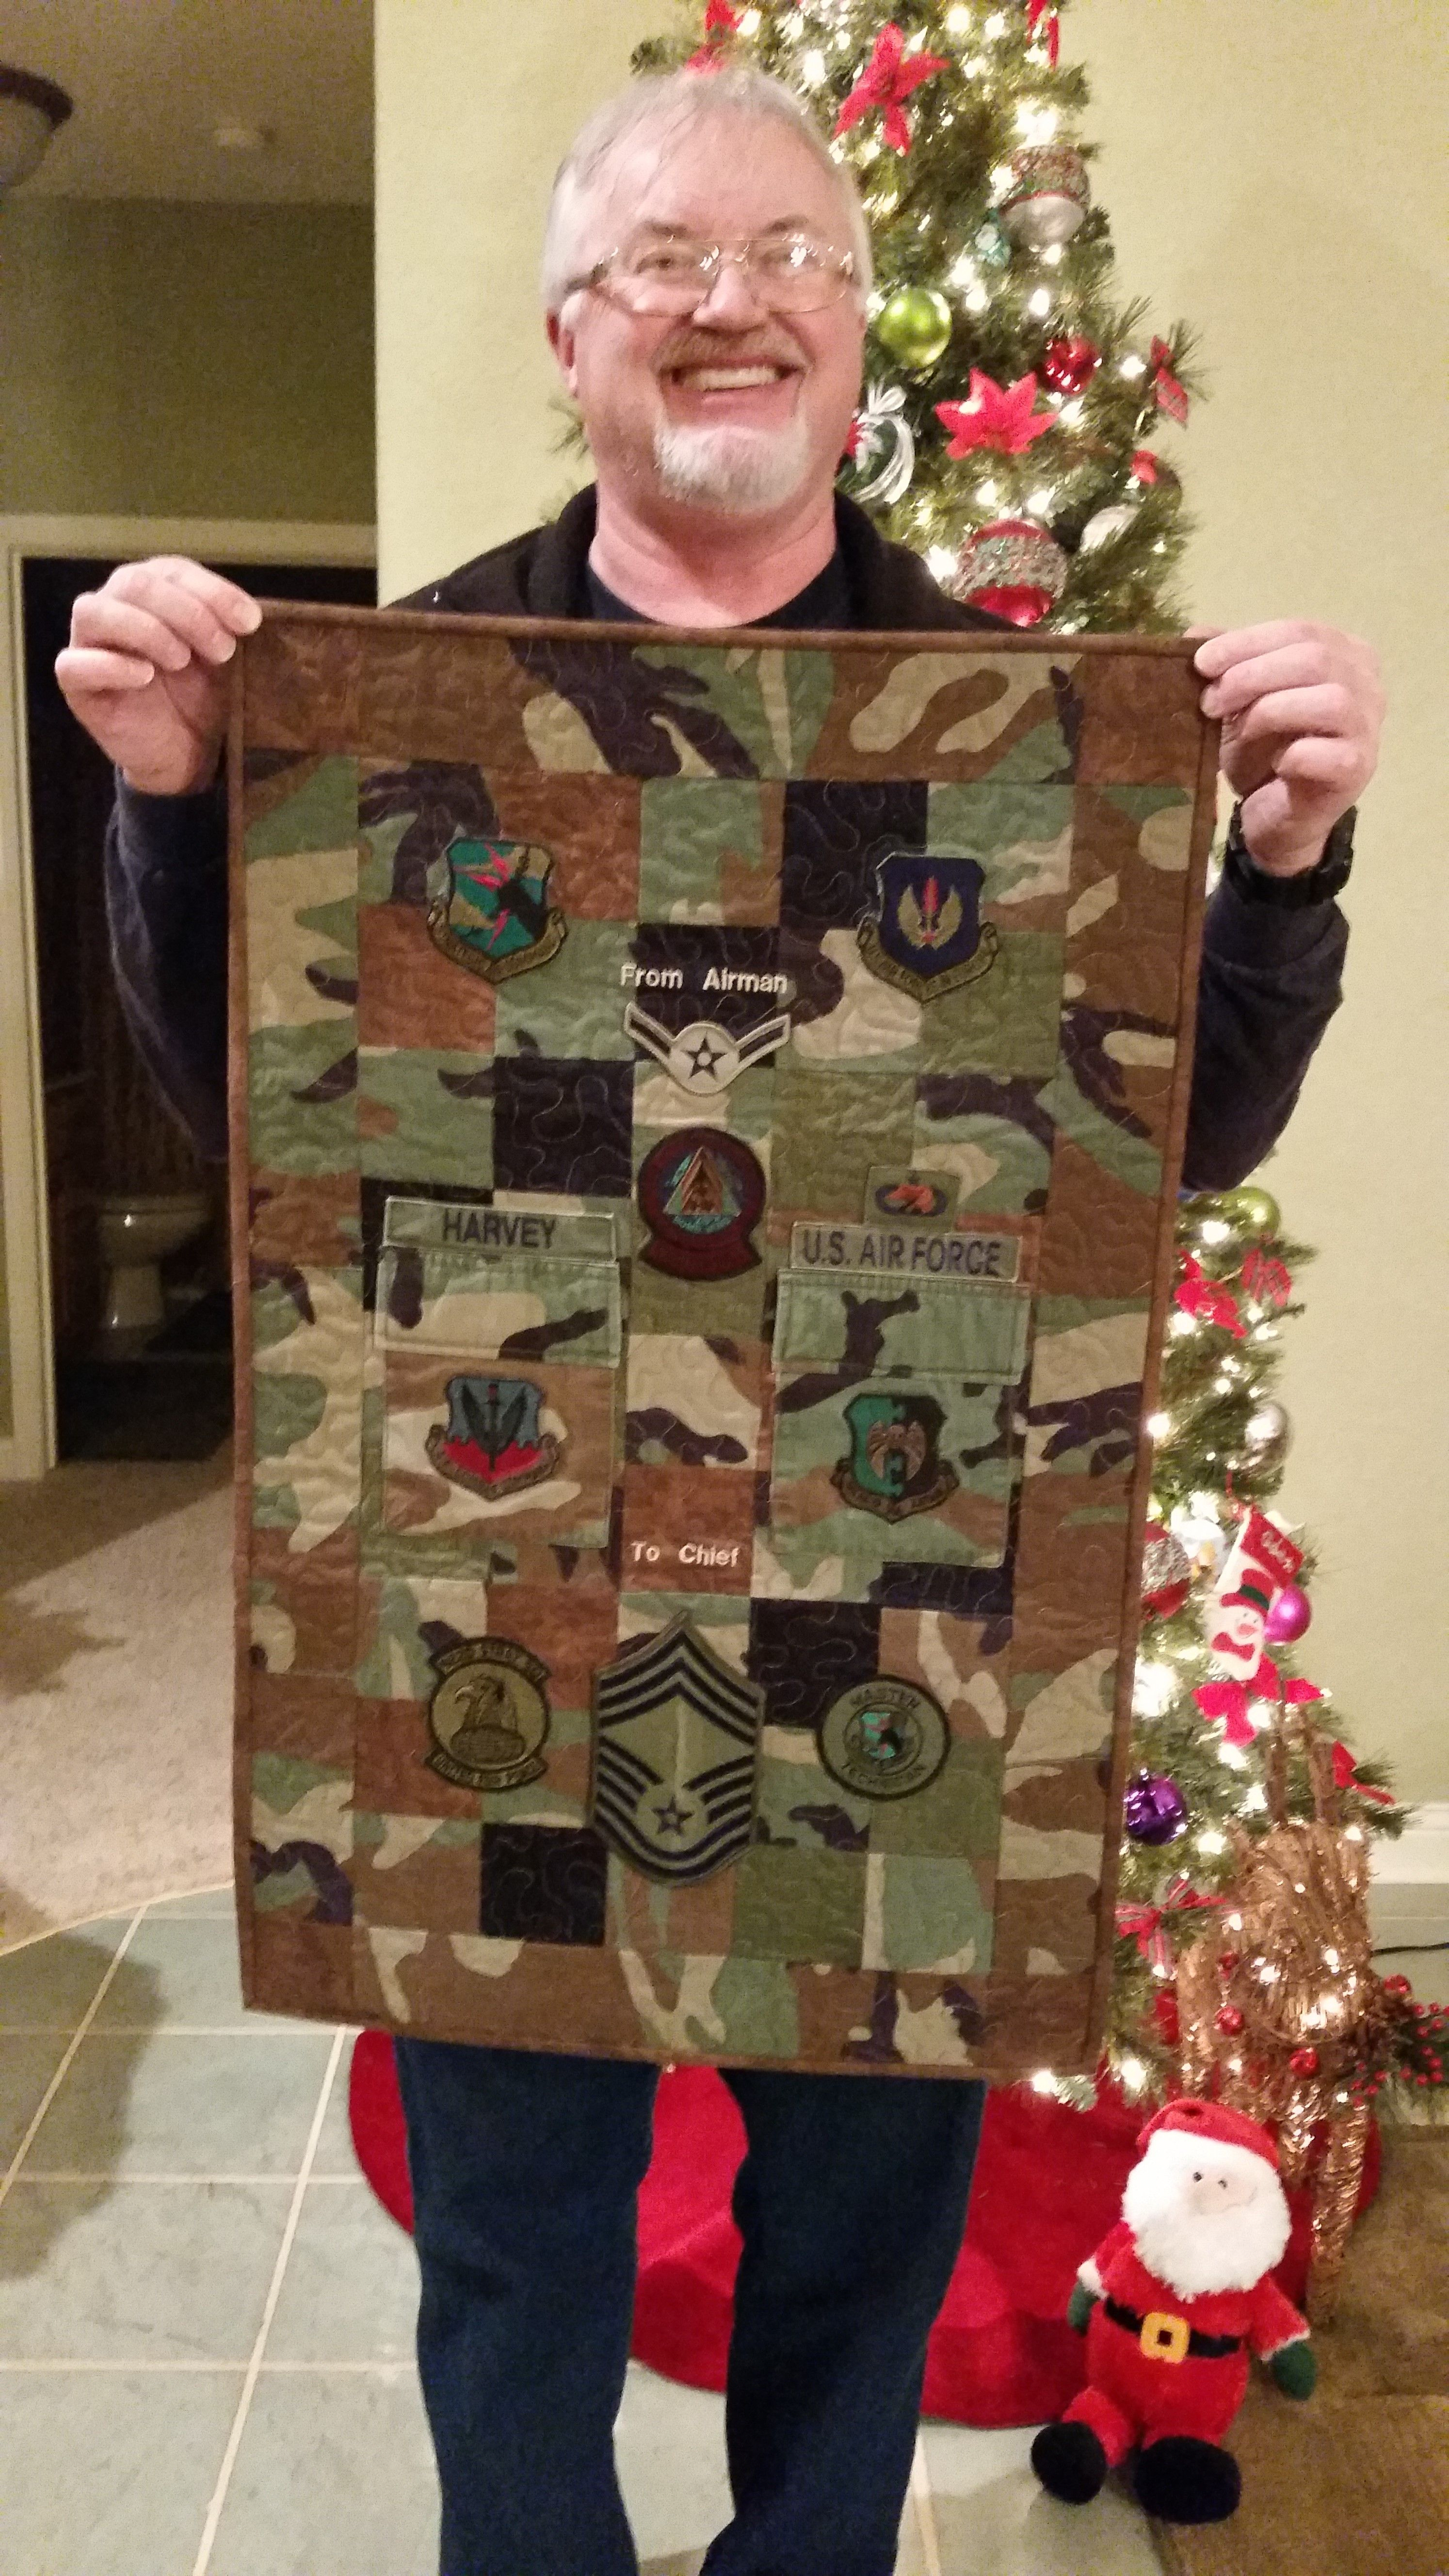 Military Career Quilt Cut Up An Old Uniform And Saved